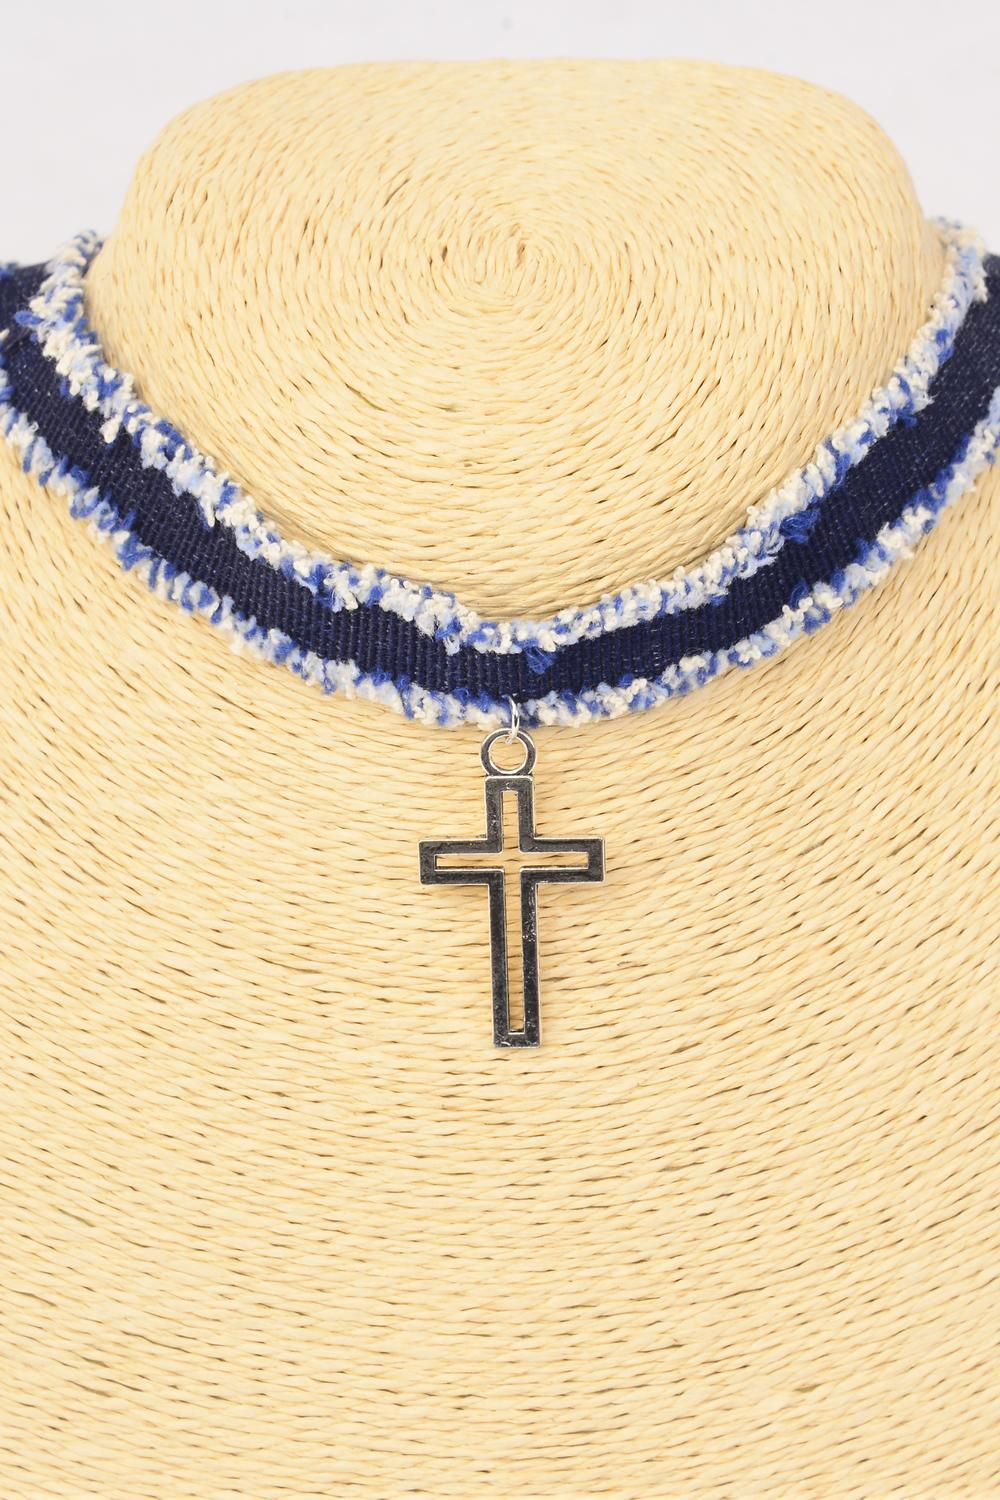 "Necklace Choker Denim Cross Pendant/DZ Size-14"" W Extension Chain,Display Card & OPP Bag & UPC Code"